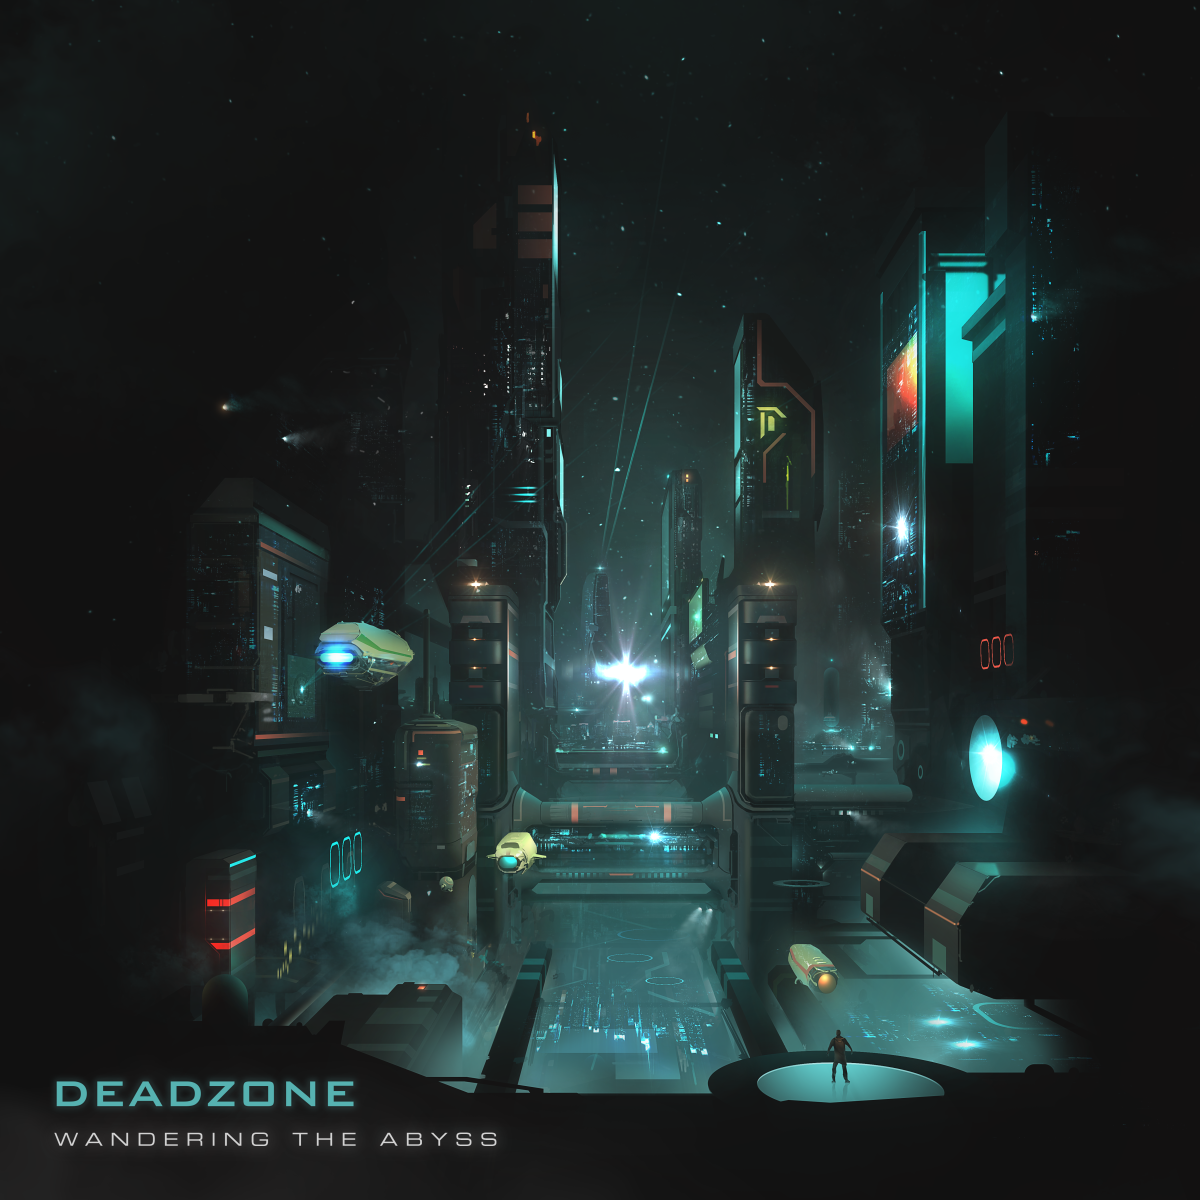 Deadzone - Wandering The Abyss (ALBUM ARTWORK)